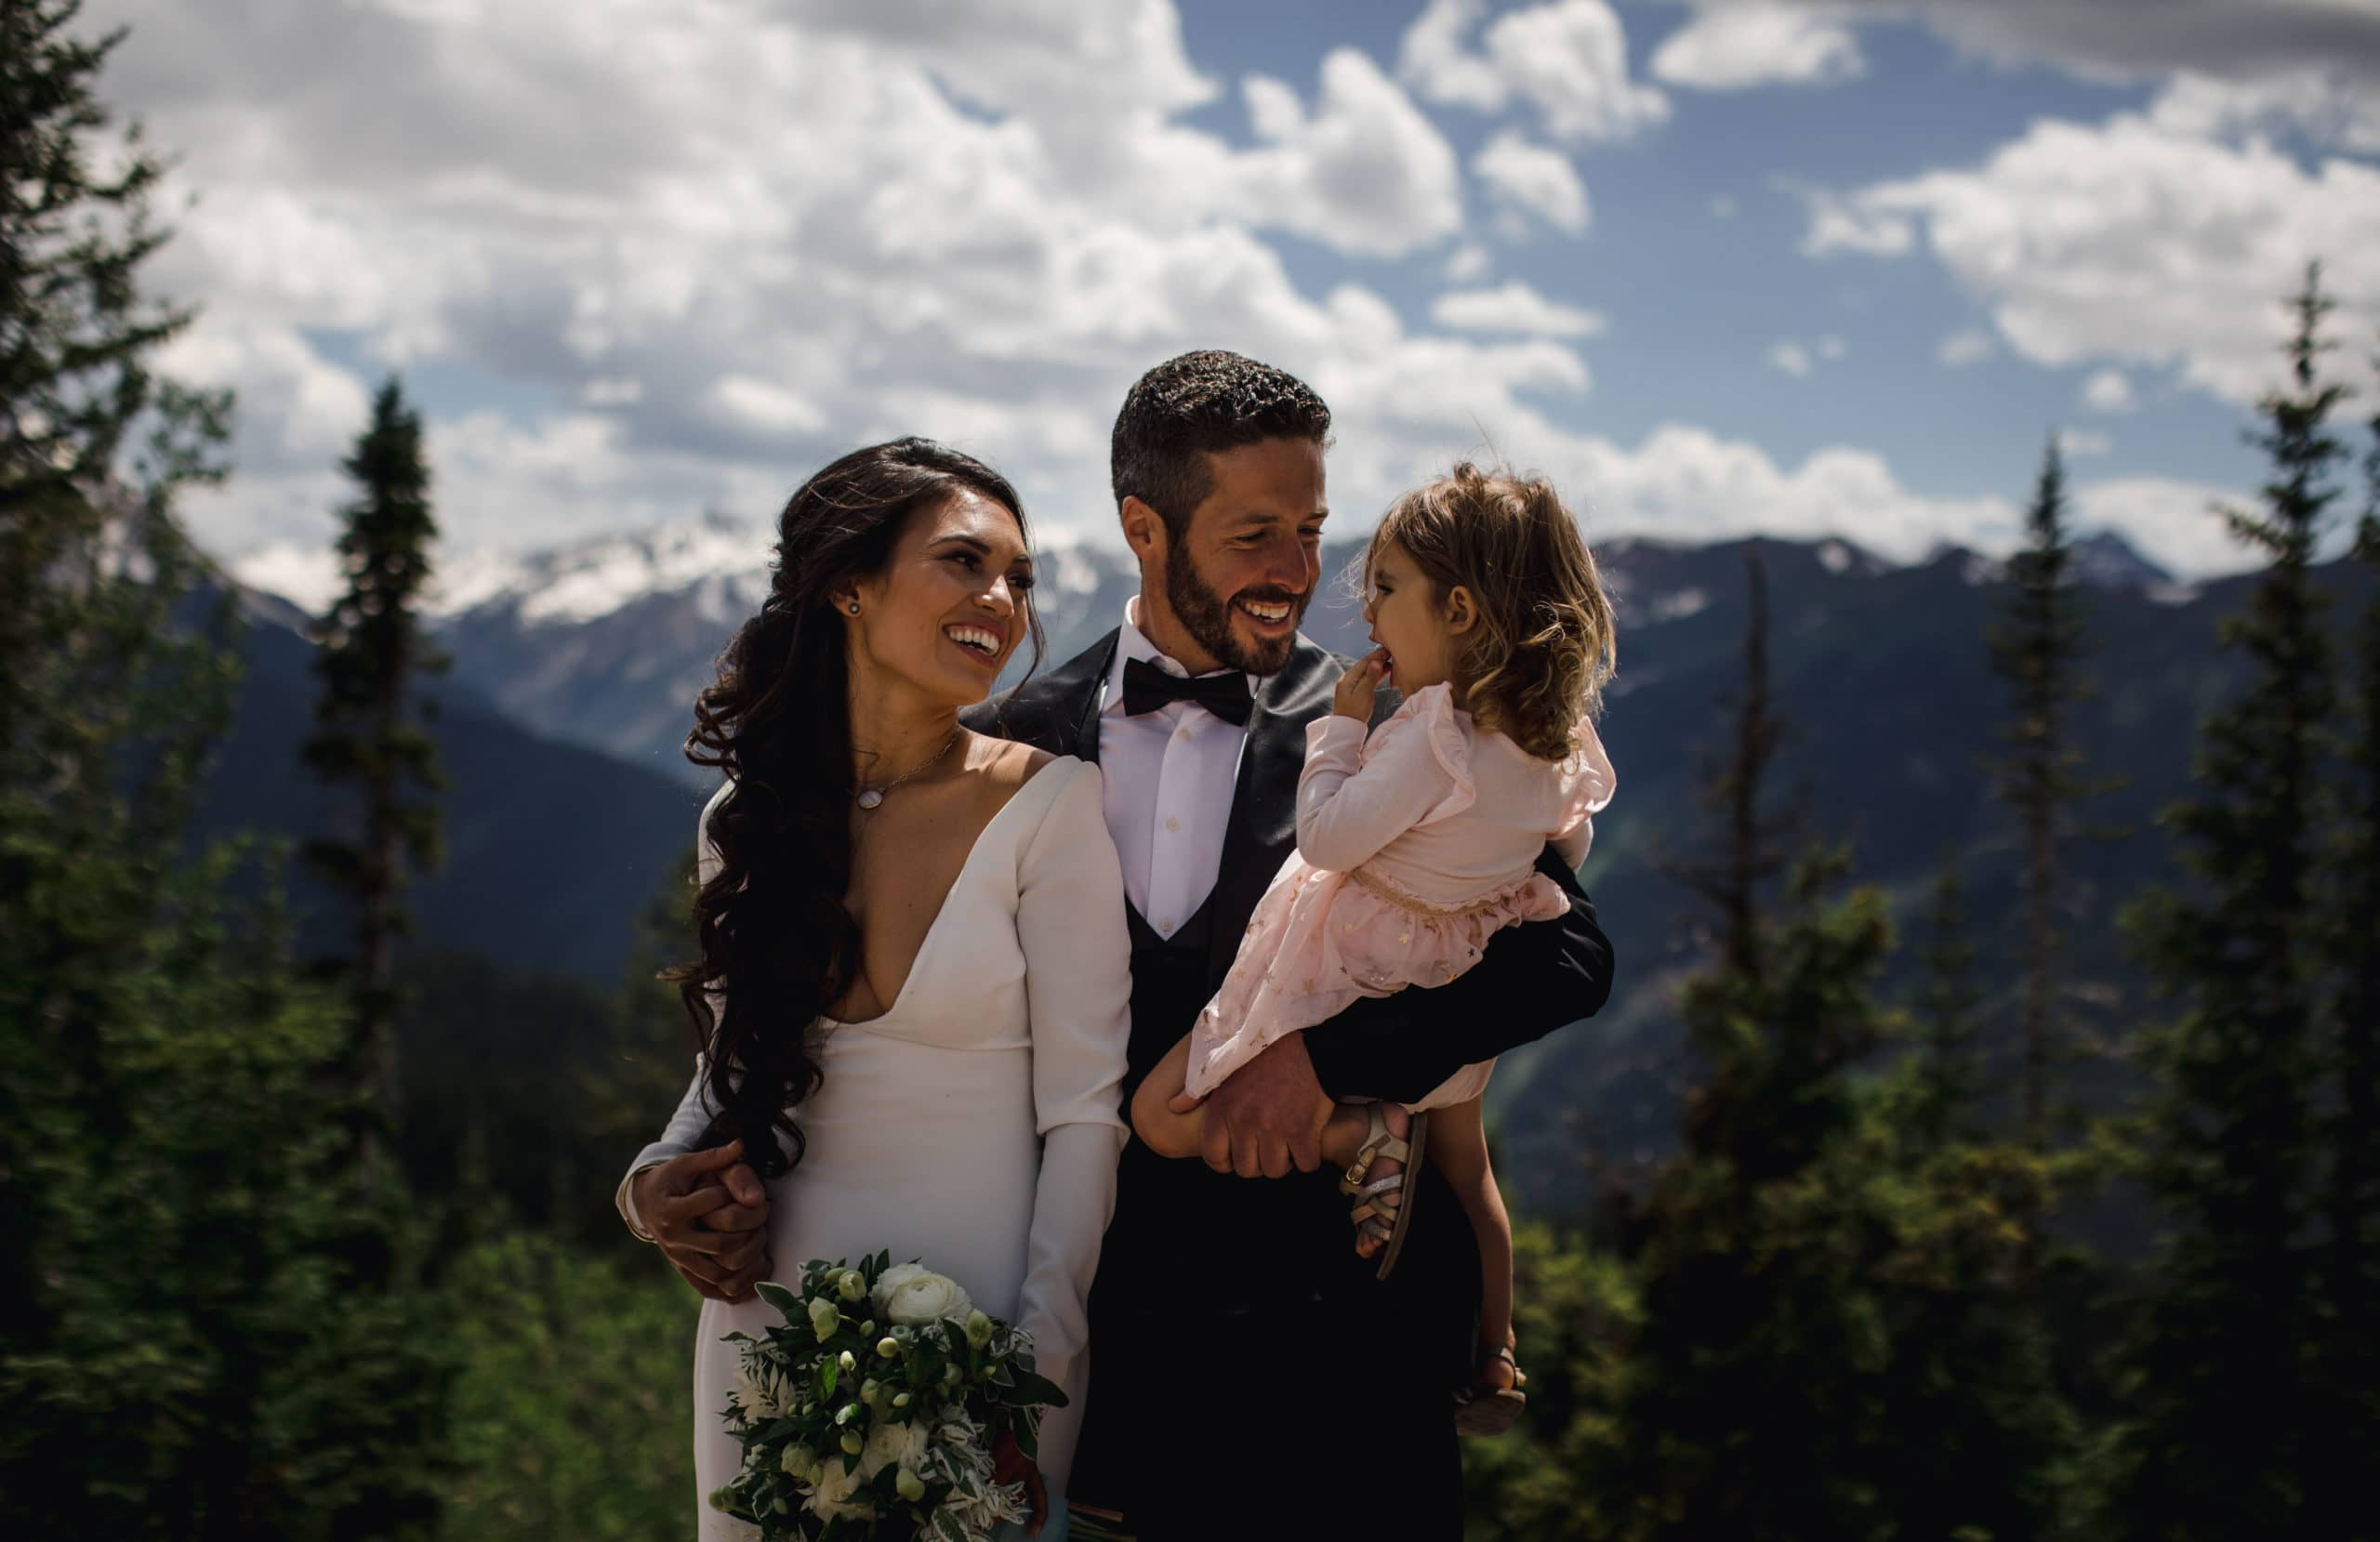 Eloping with children can really bring the whole family together to celebrate a union of two parents.